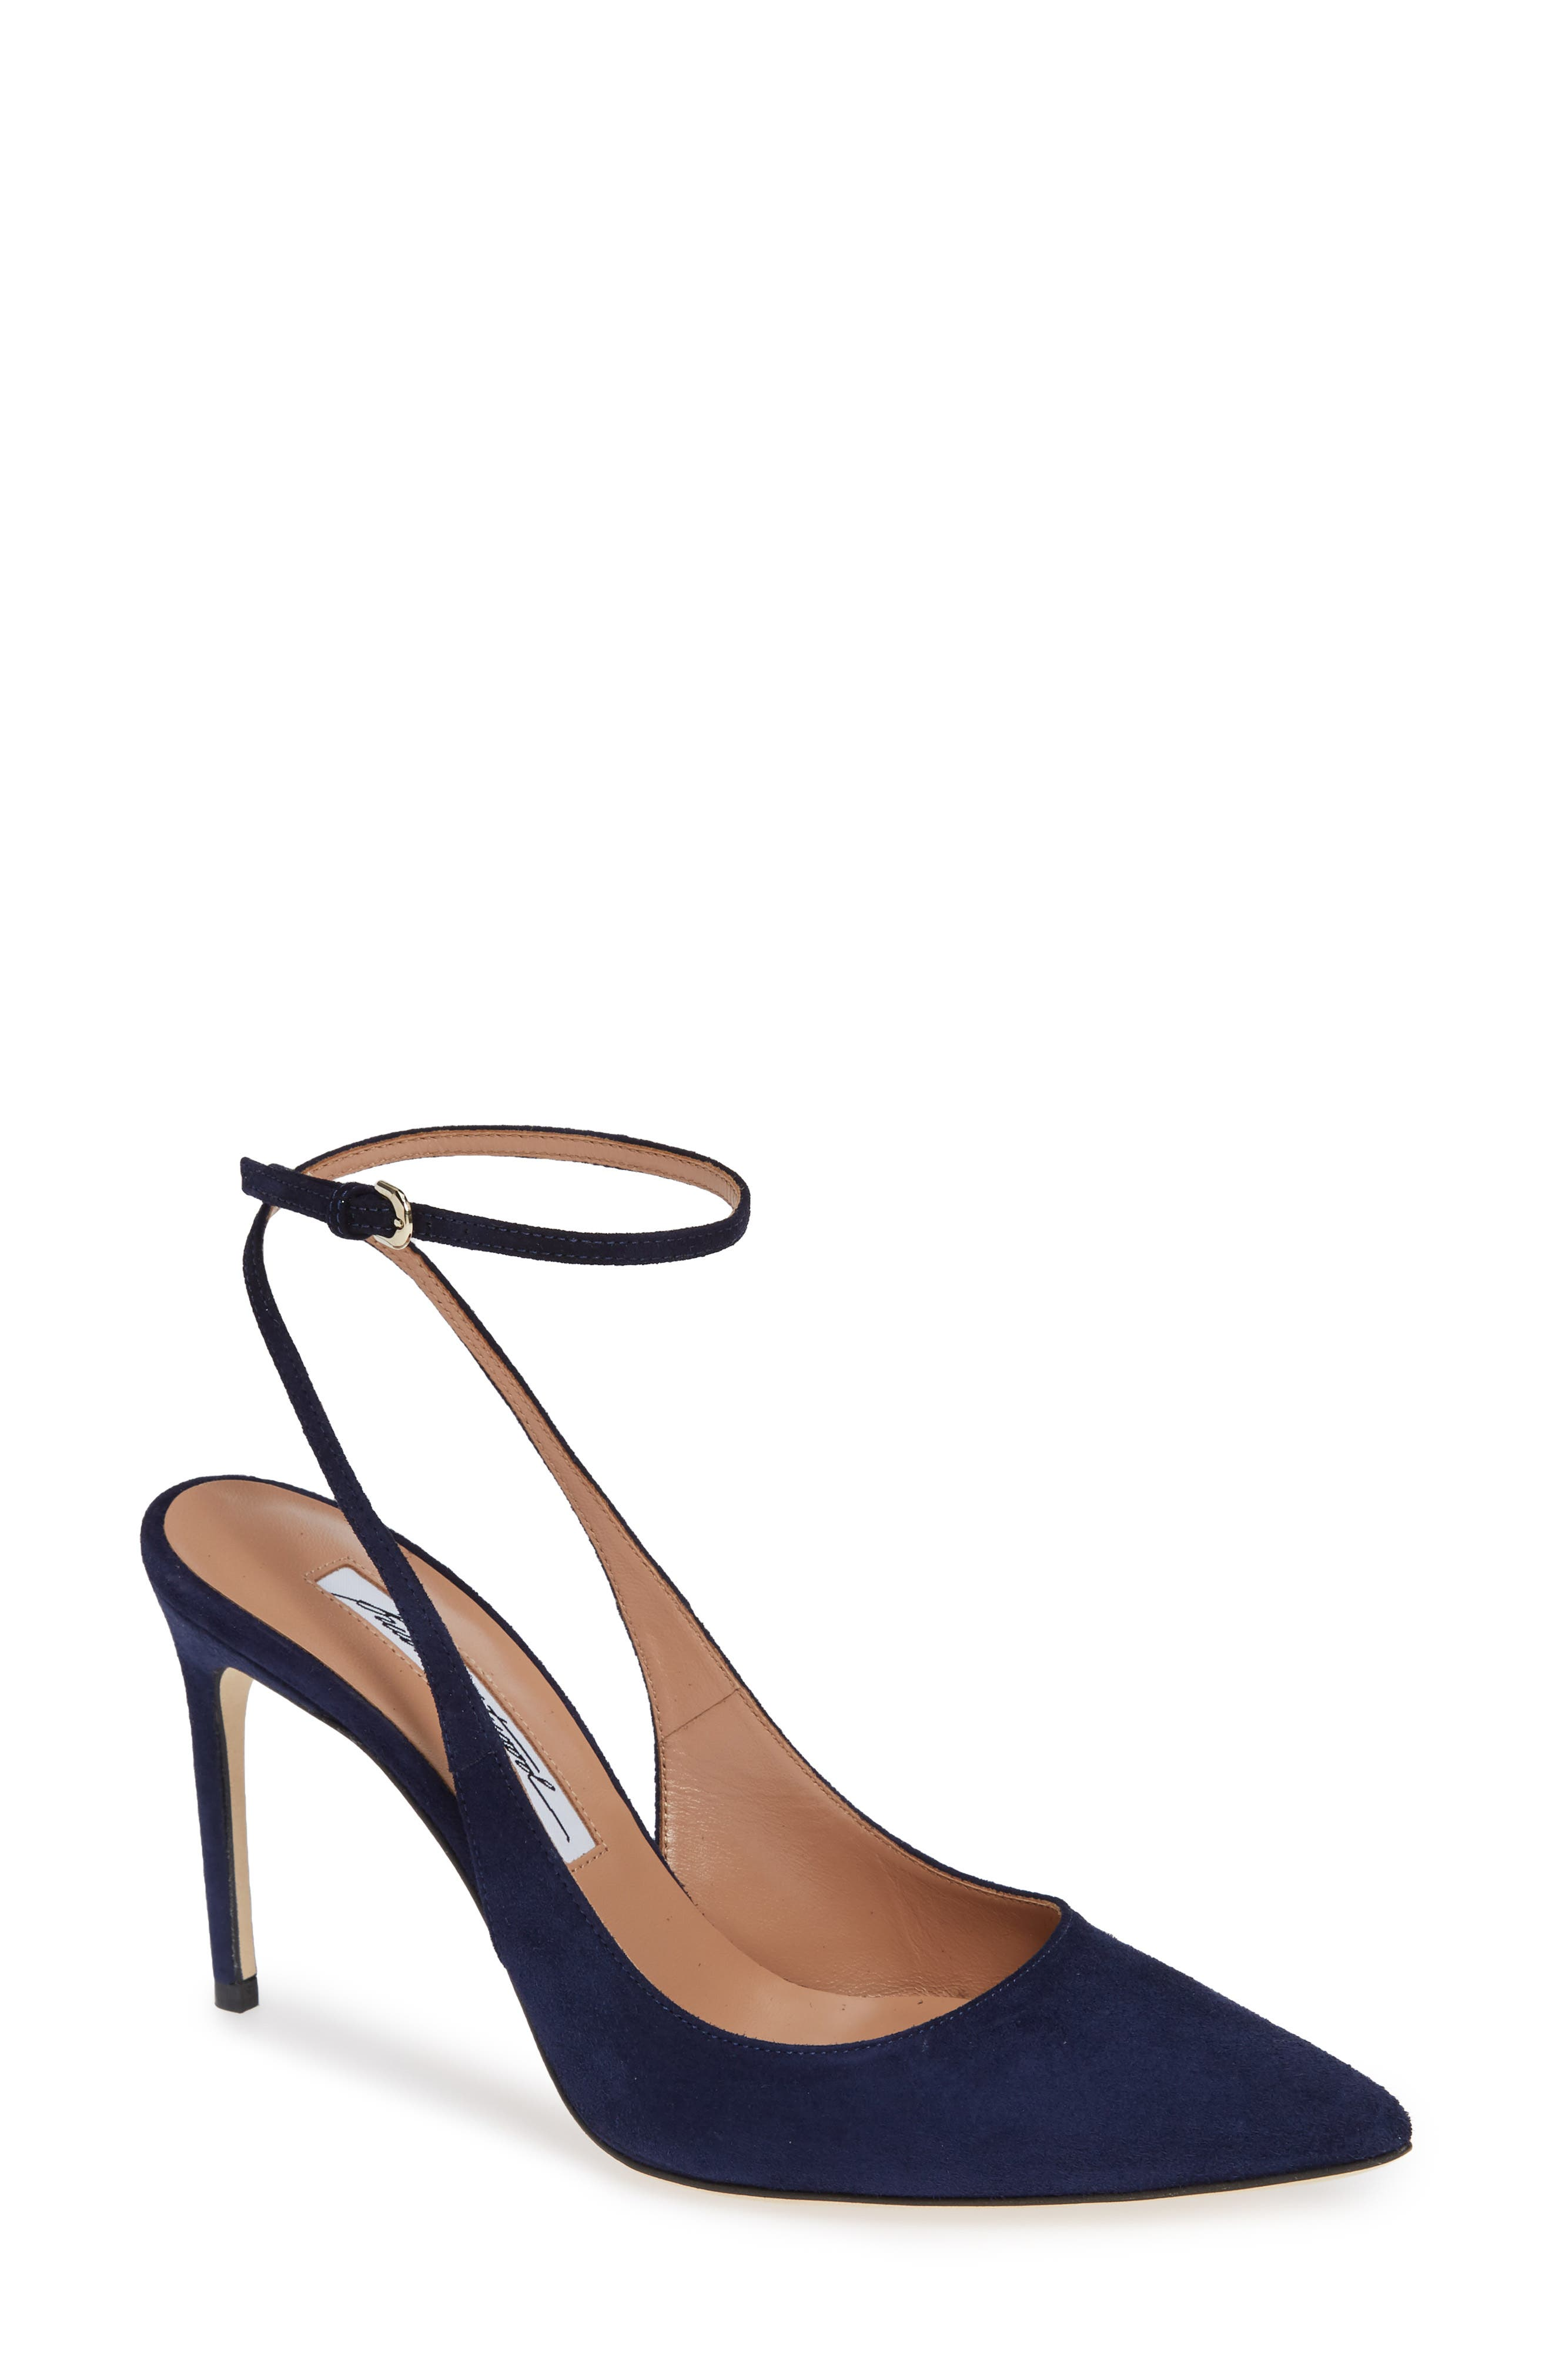 BRIAN ATWOOD Vicky Wraparound Pump in Black Suede